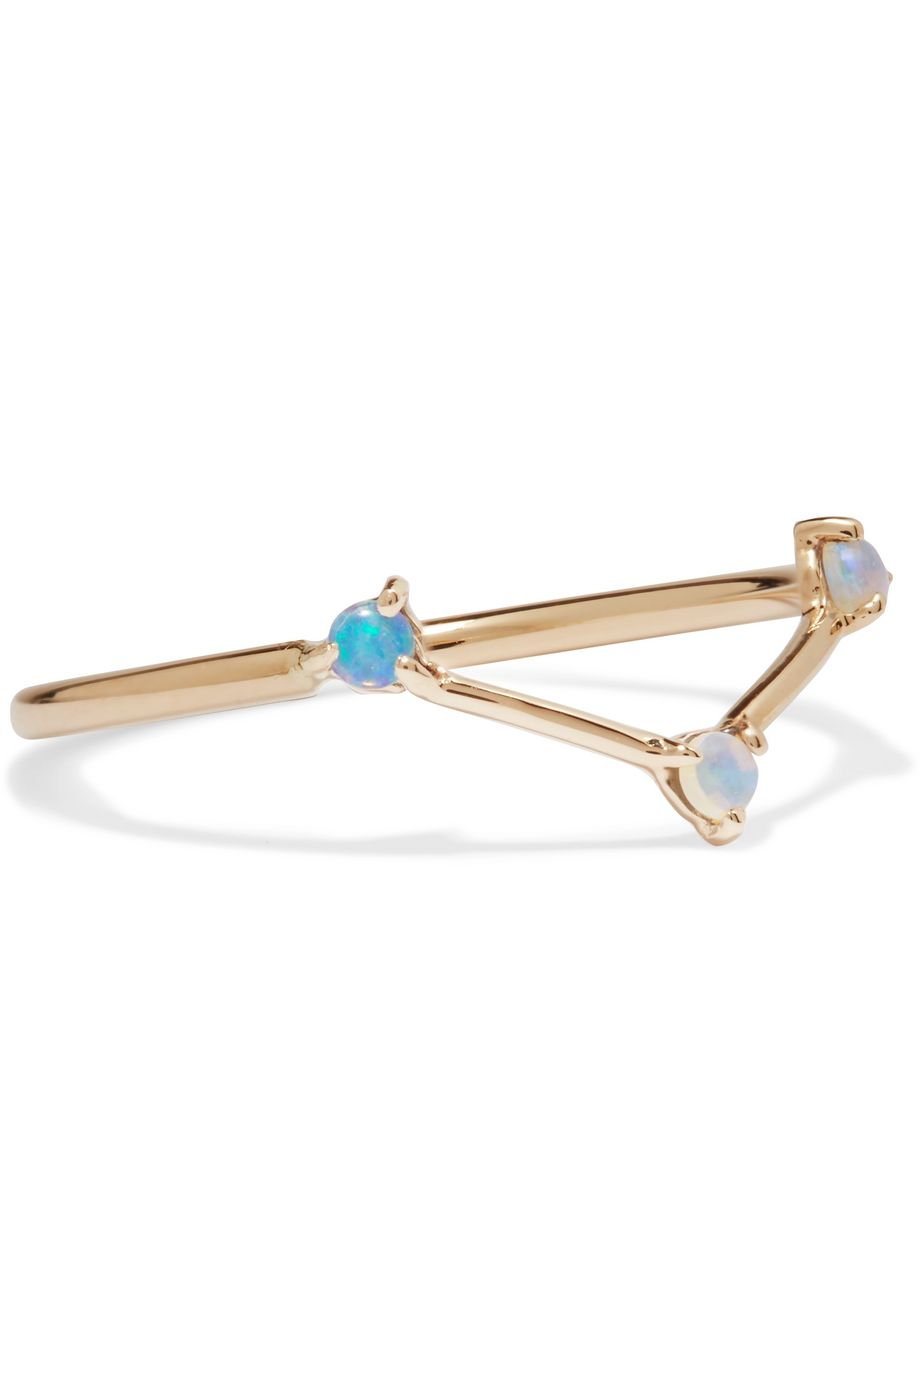 Wwake Three Step 14-karat gold opal ring